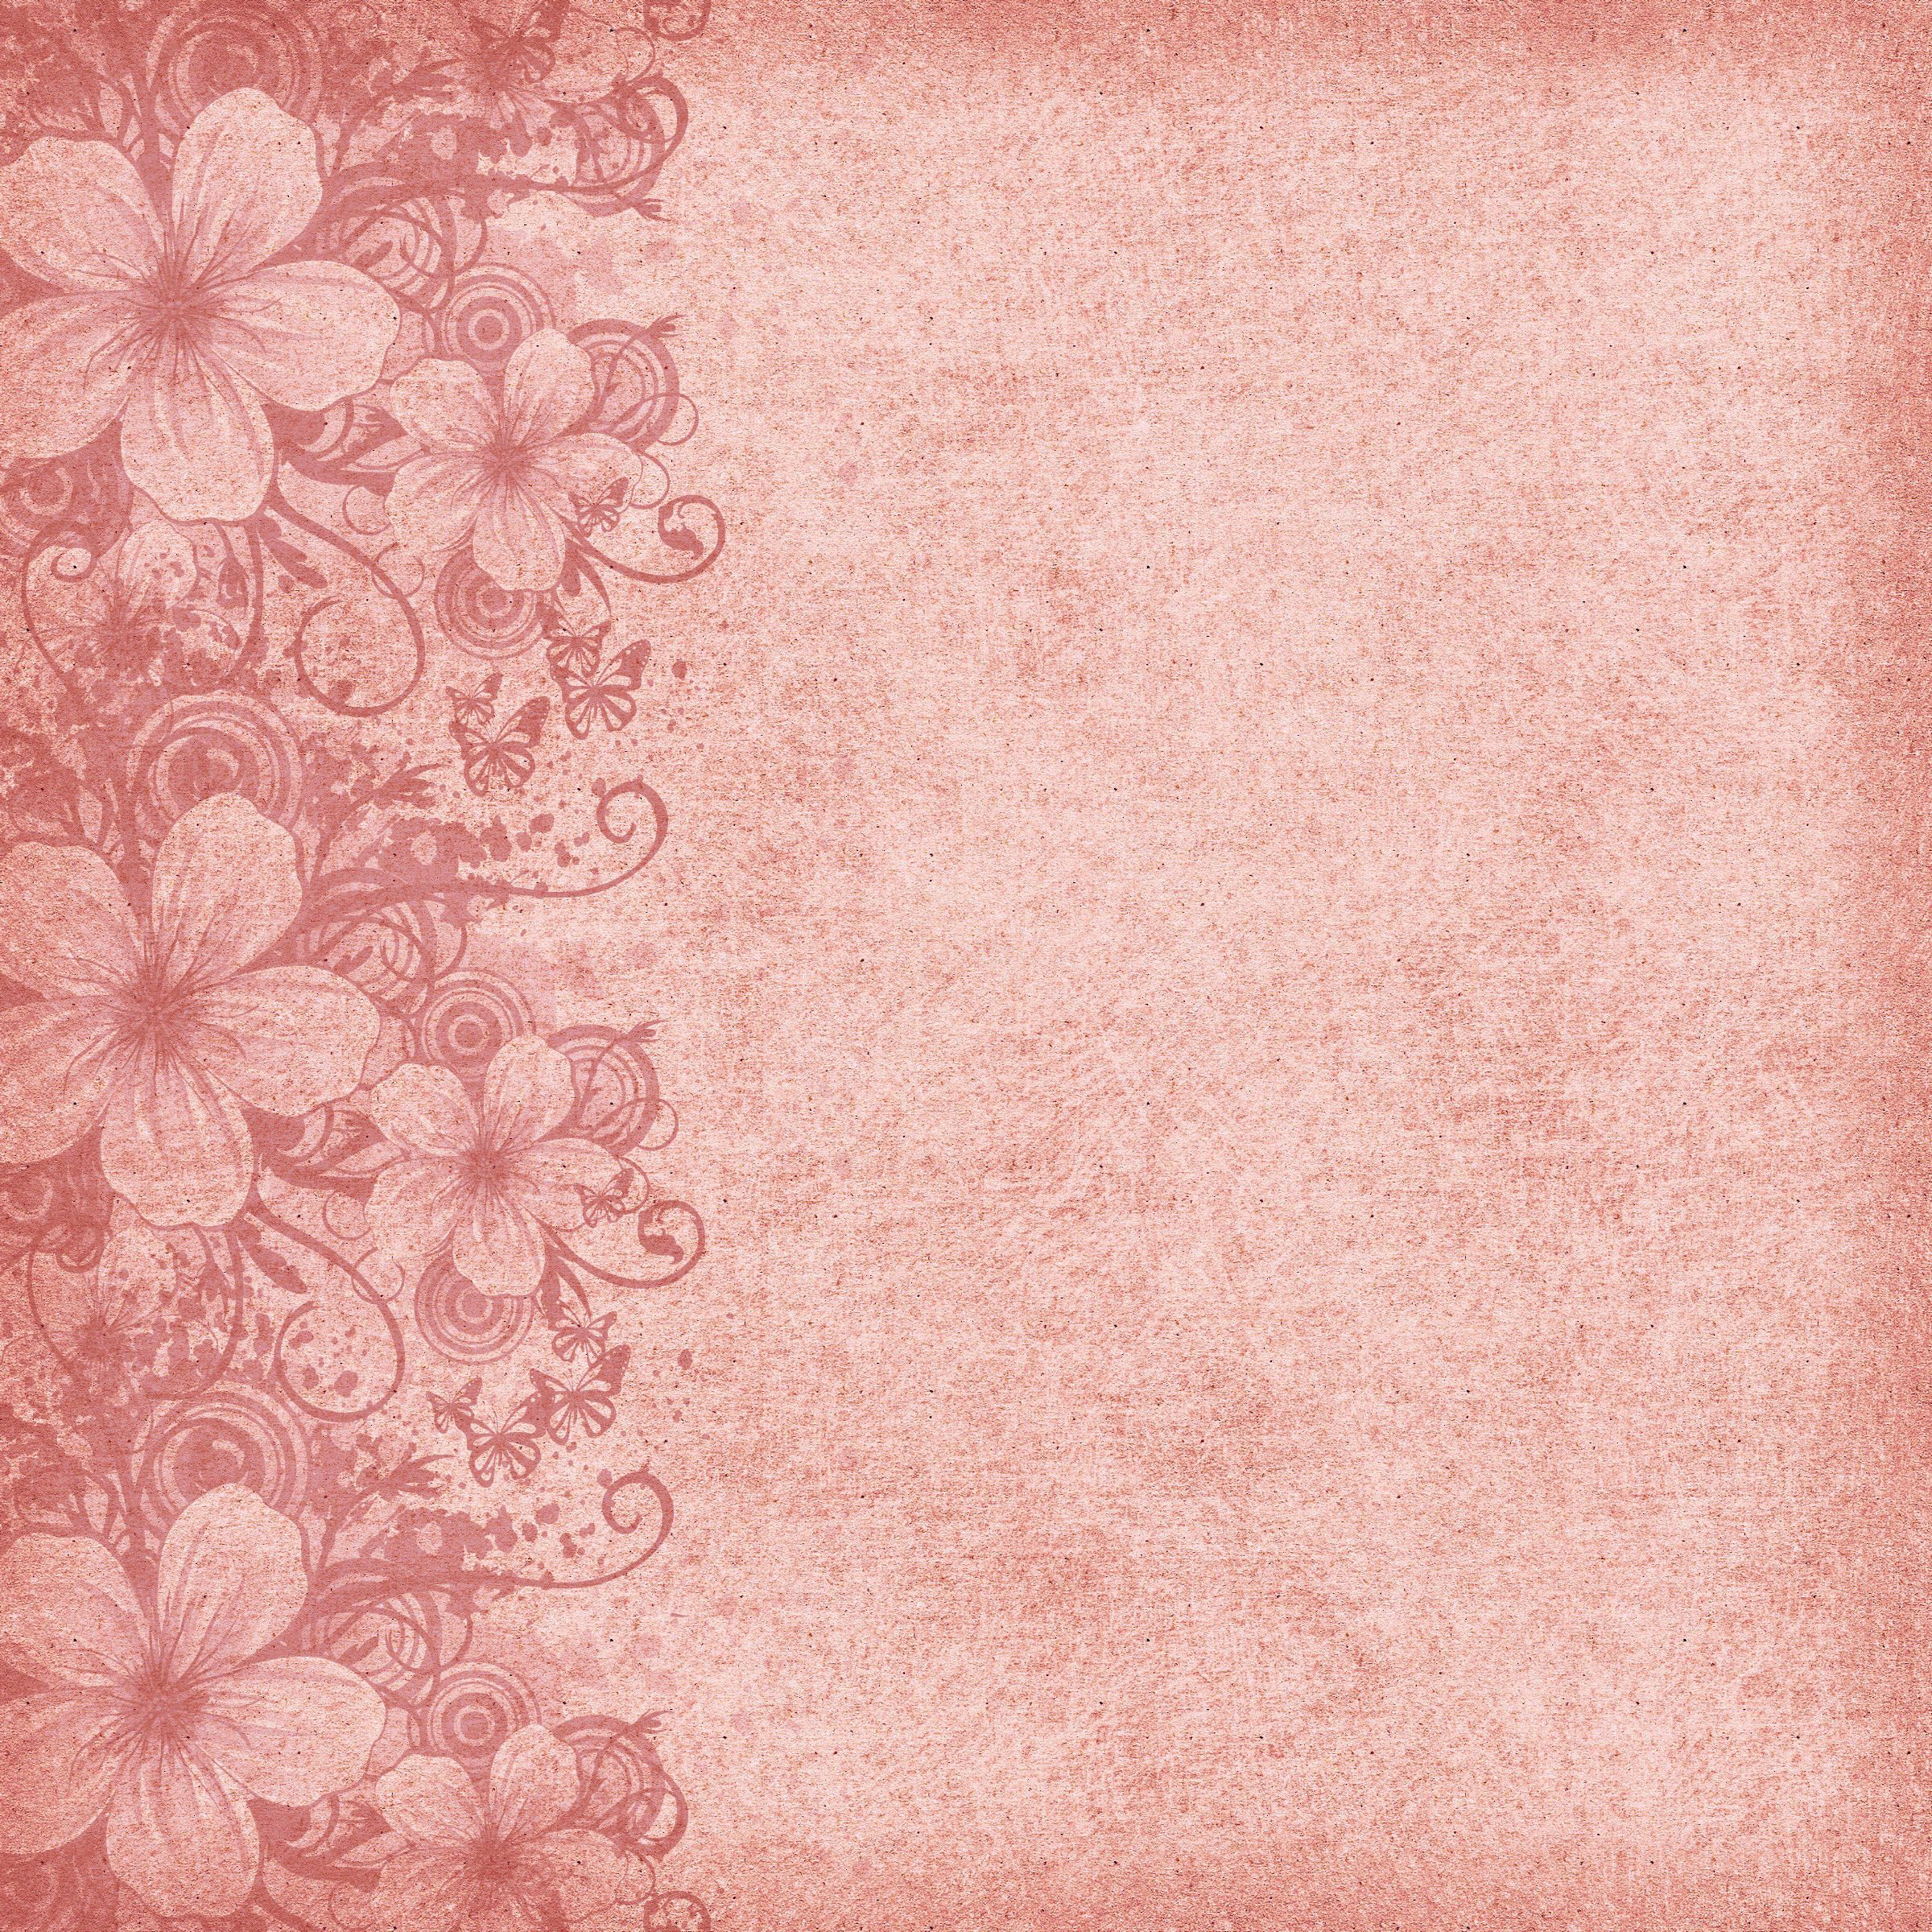 Old Paper Wallpaper: Texture_914 By DianazDesignz.deviantart.com On @deviantART